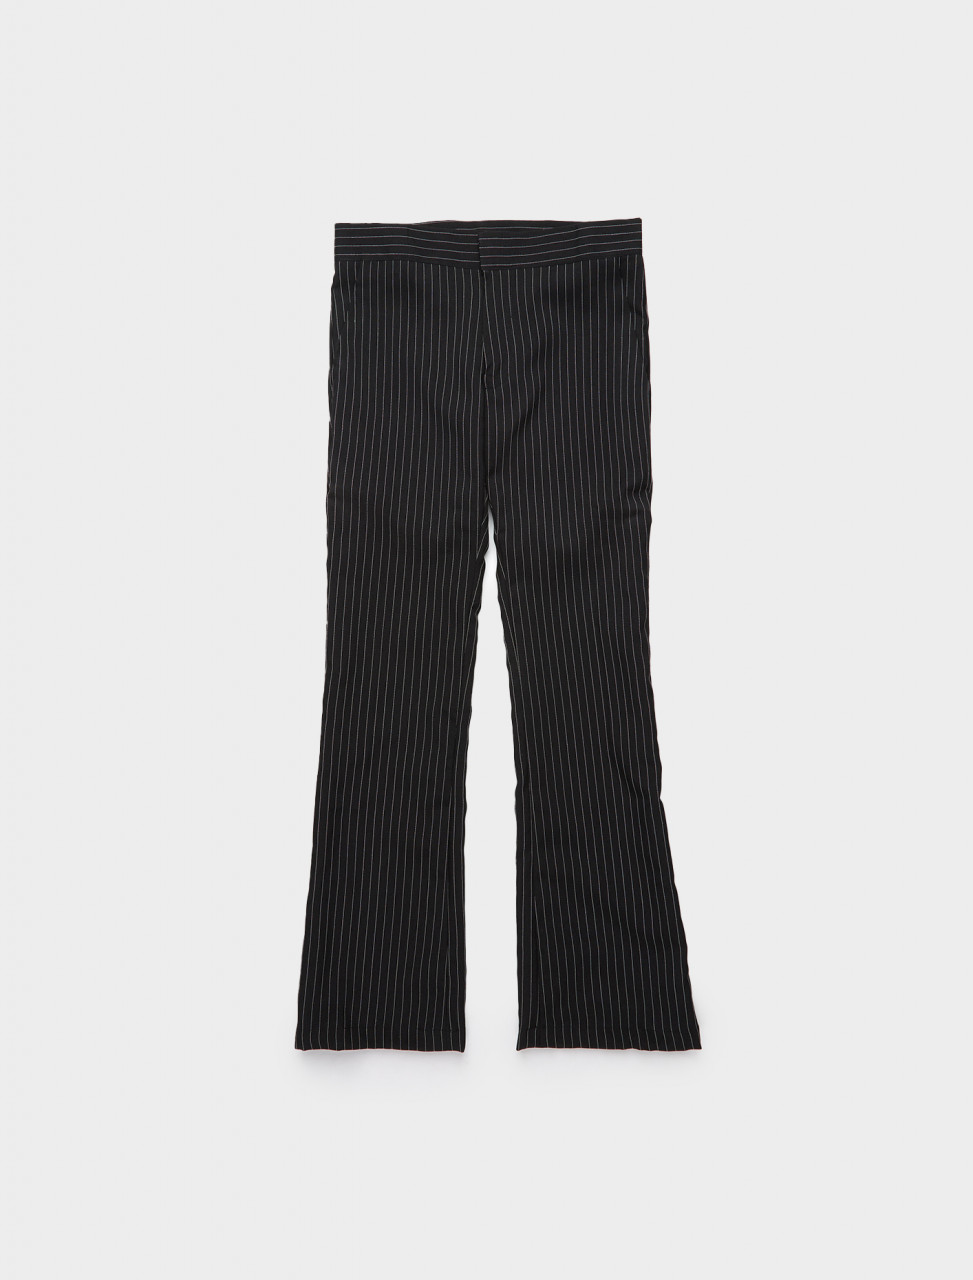 328-YOU01P008-1 YOUTHS IN BALACLAVA PIN STRIPE FORMAT TROUSERS IN BLACK